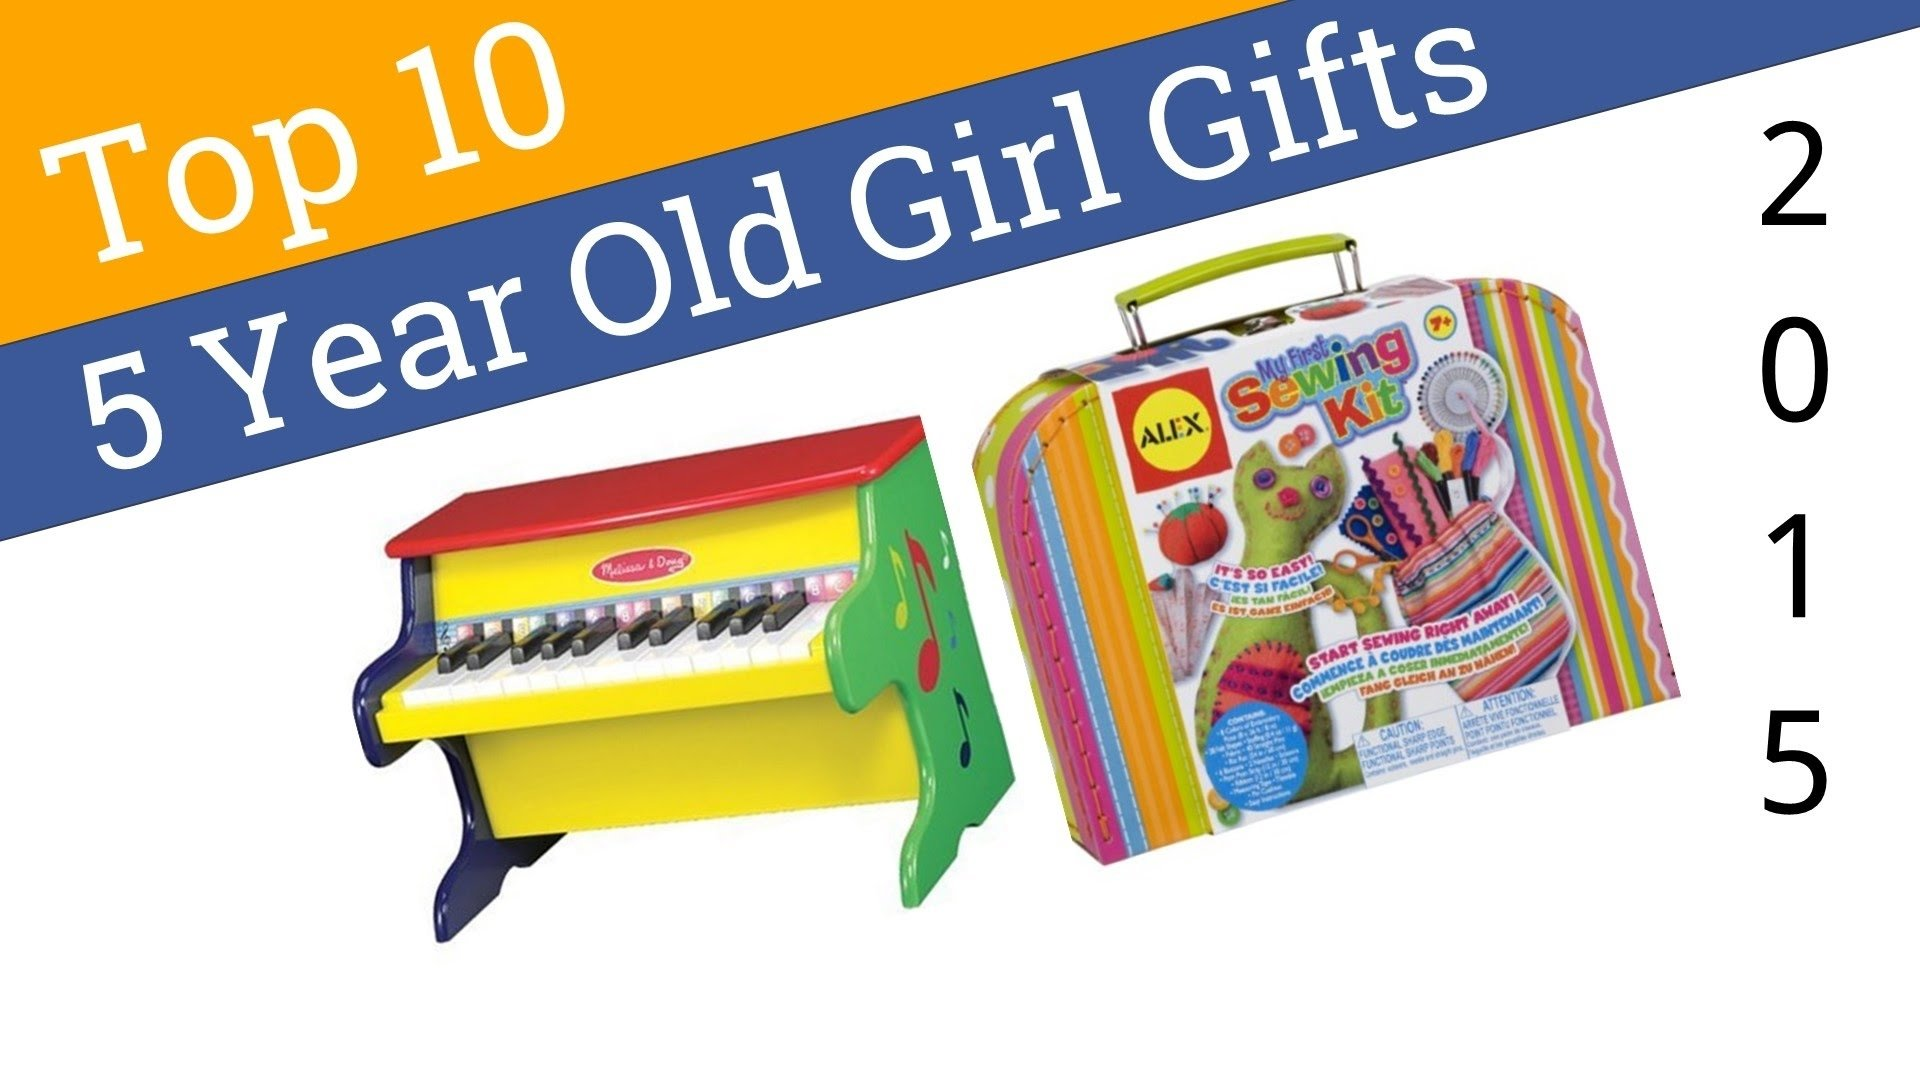 10 famous gift ideas for 5 year old birthday girl 10 best 5 year old girl